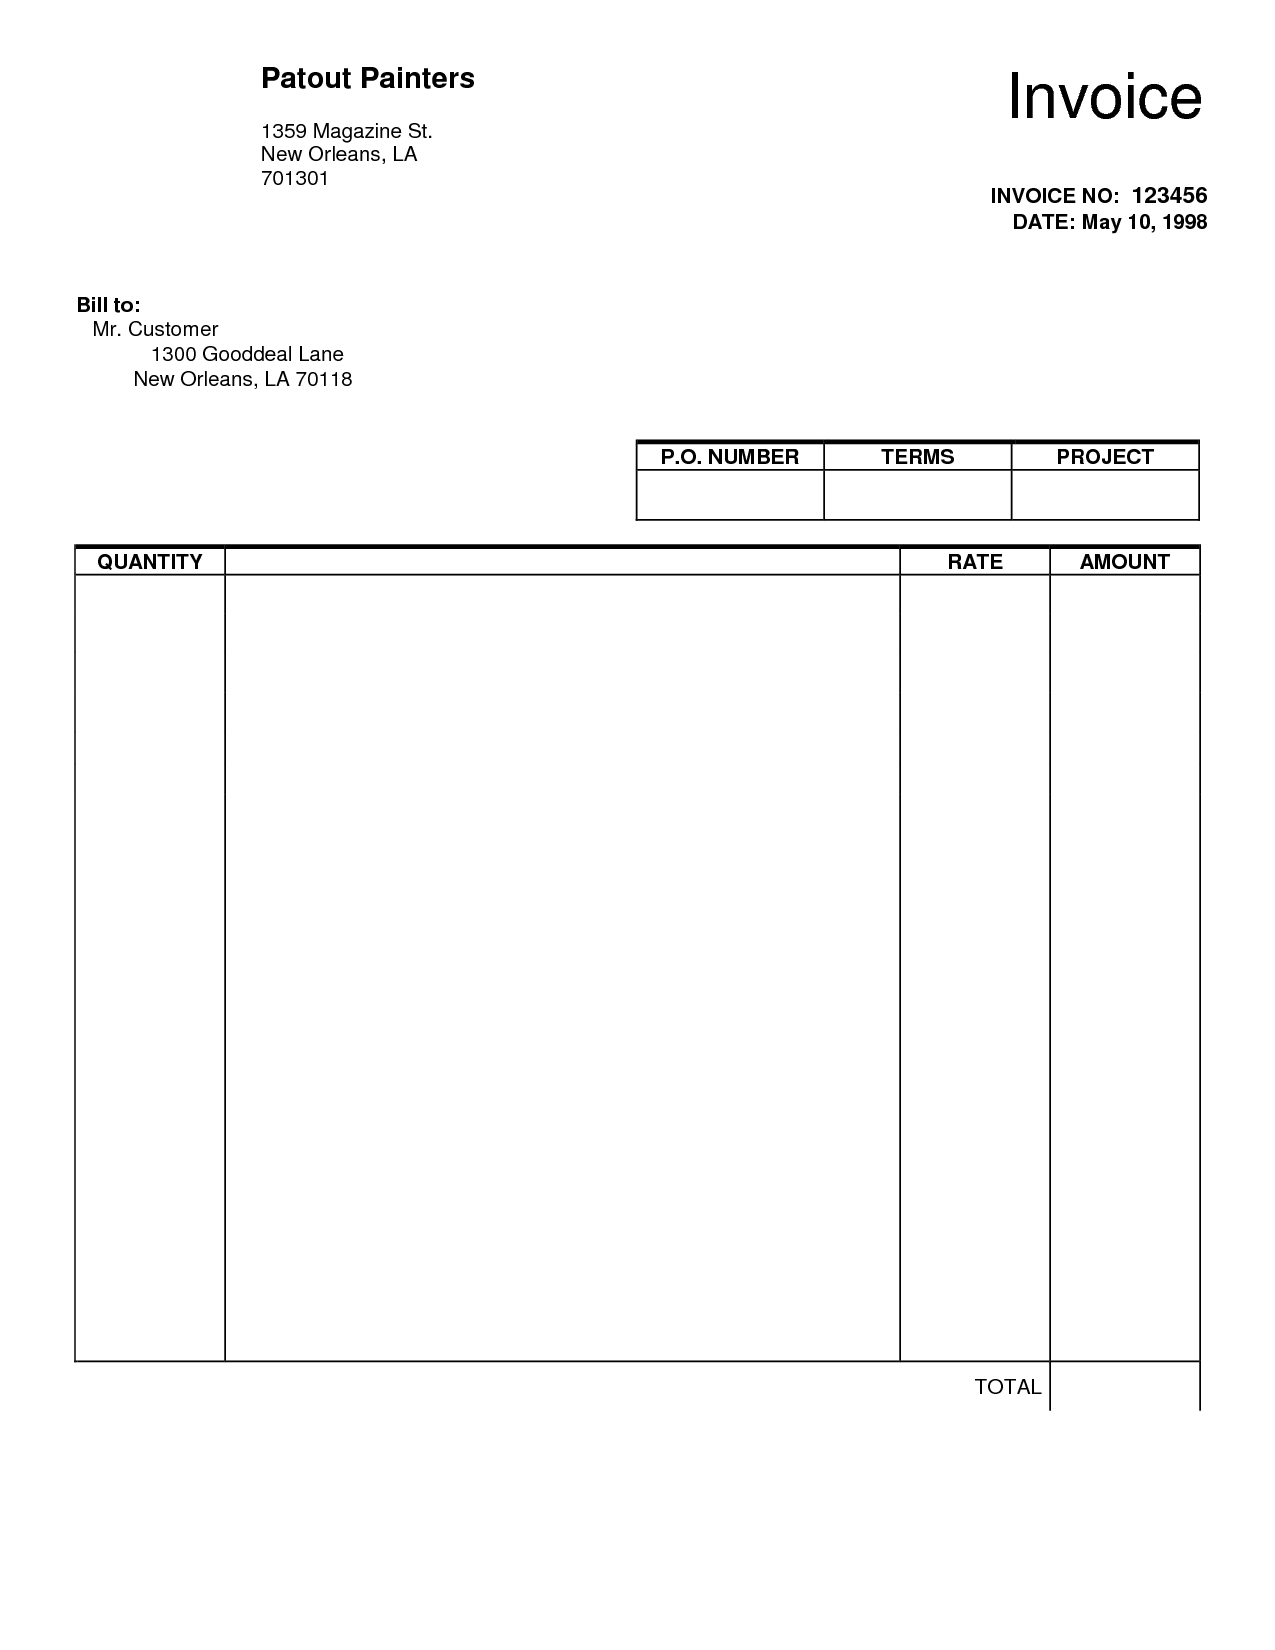 blank invoice template to print invoice templat invoice templates blank invoice form